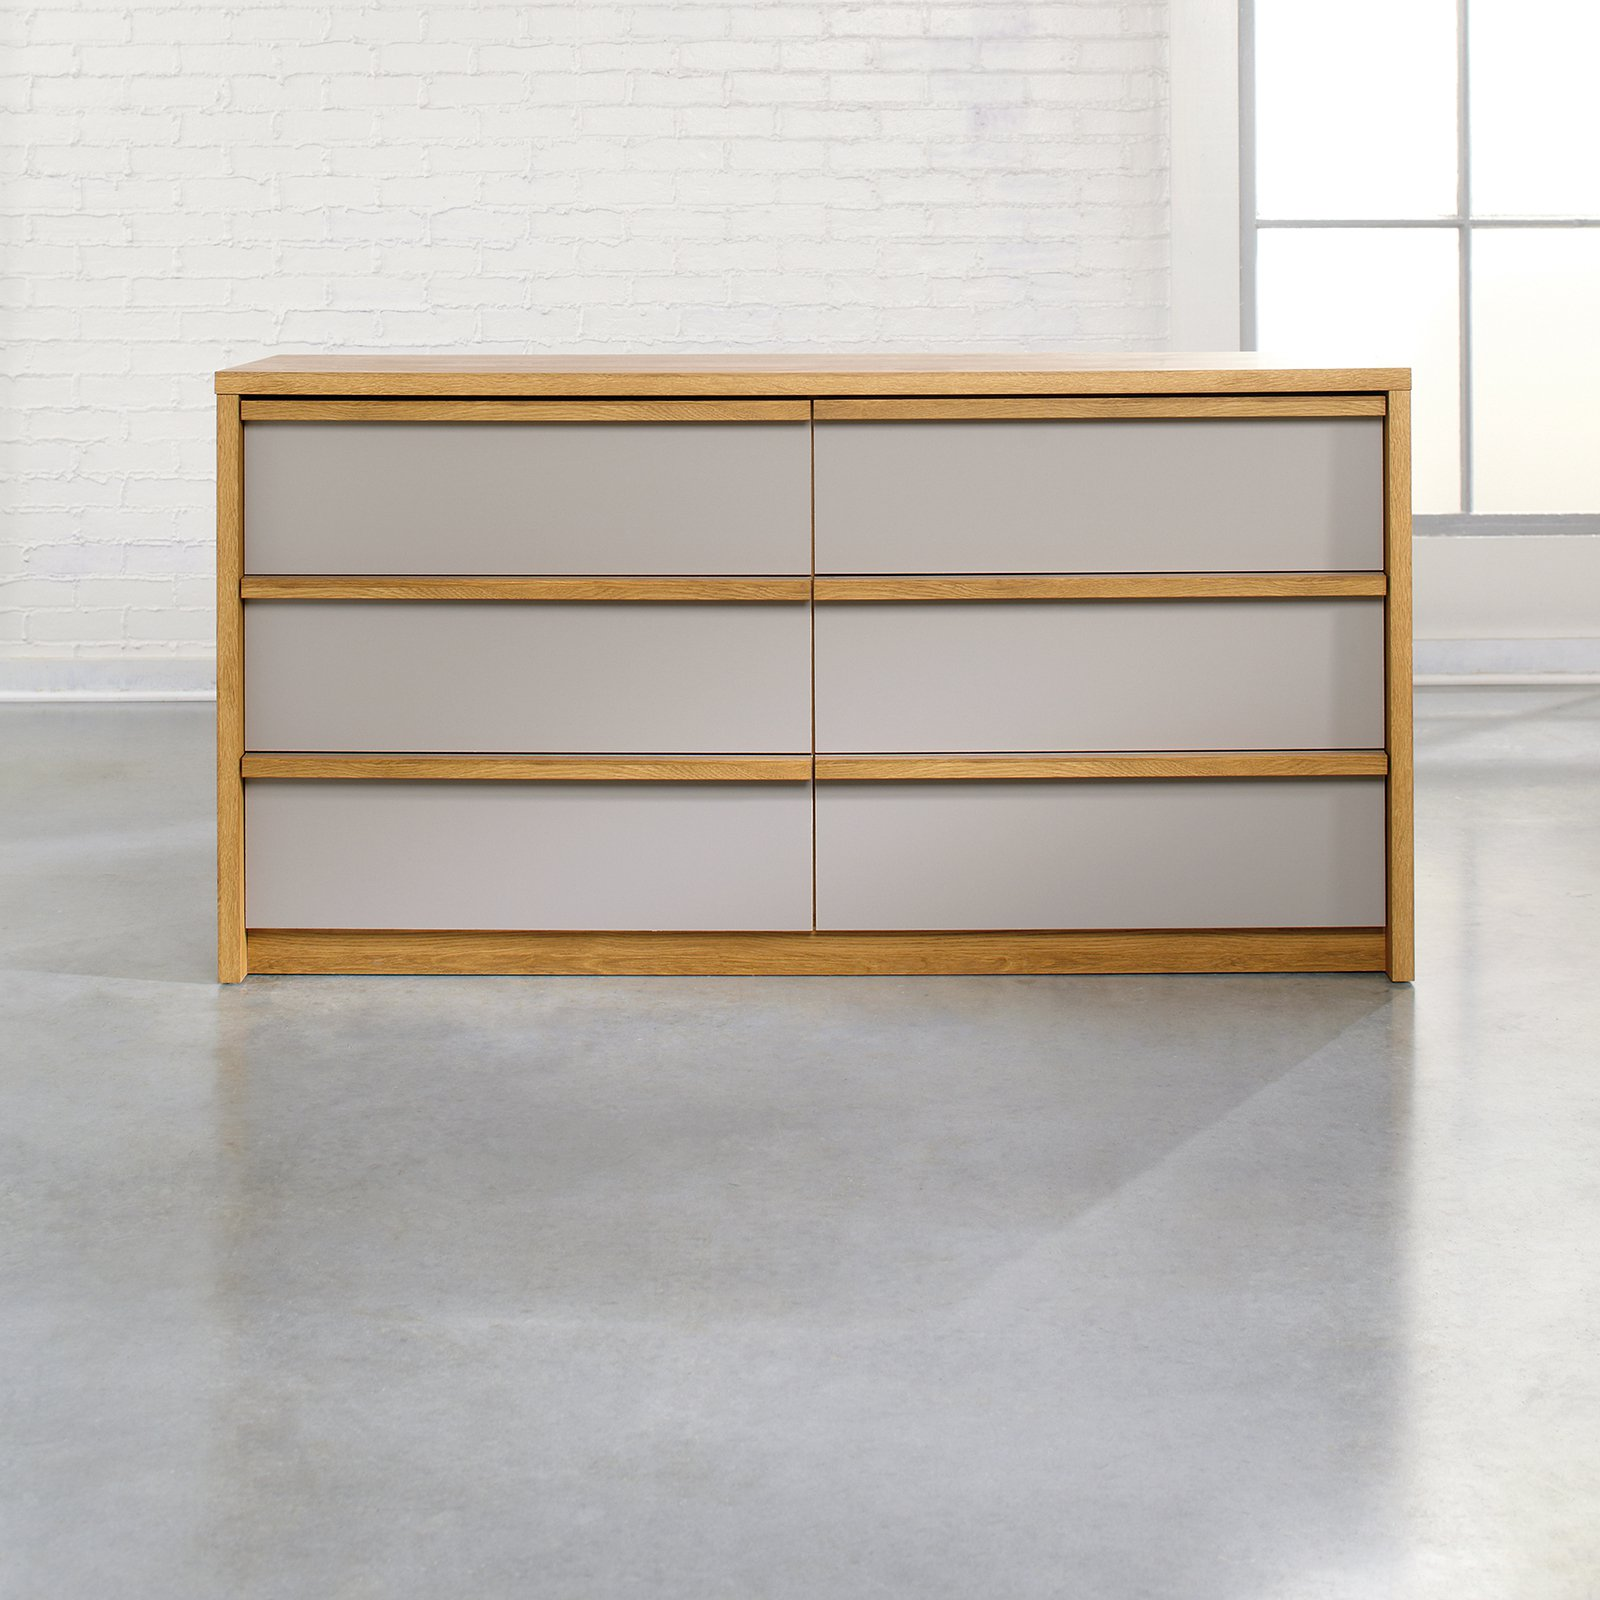 Soft Modern 6 Drawer Dresser - Pale Oak